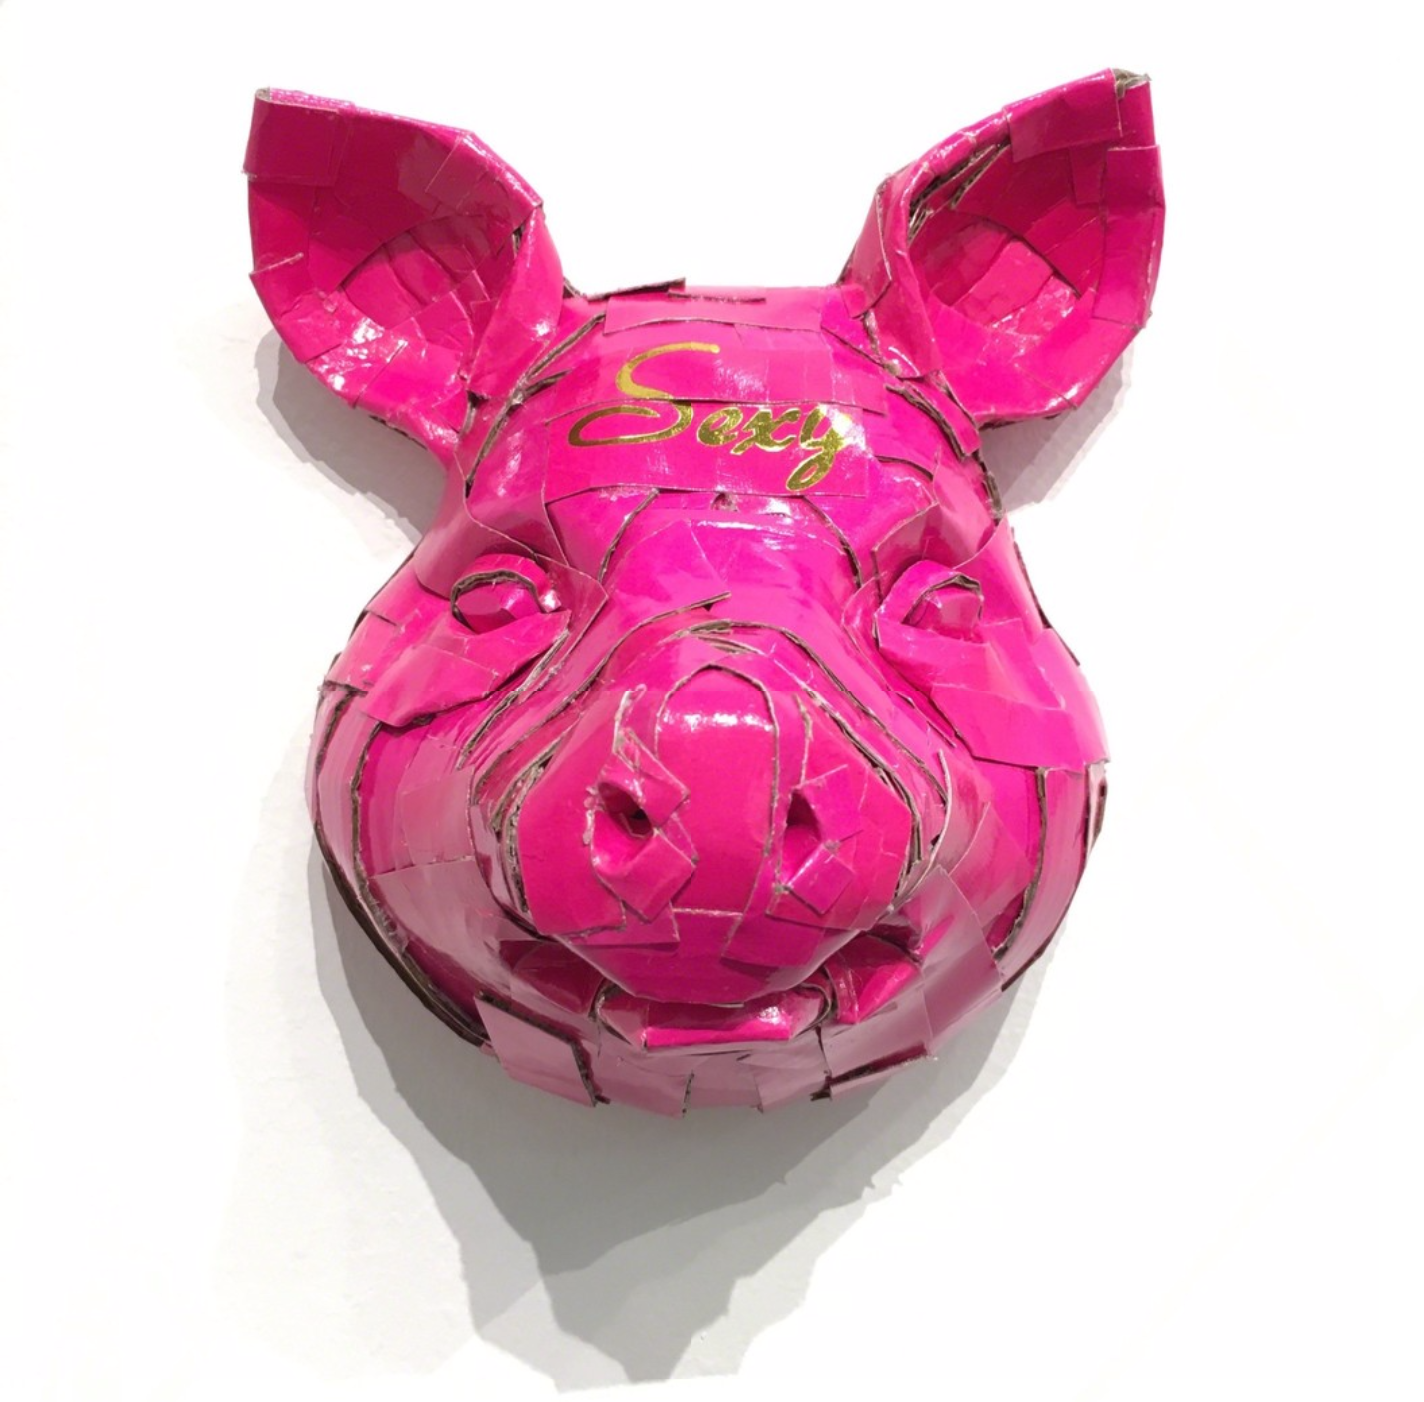 Laurence Valliéres Upcycled Cardboard Strip Animal Sculptures - Sexy Cochon